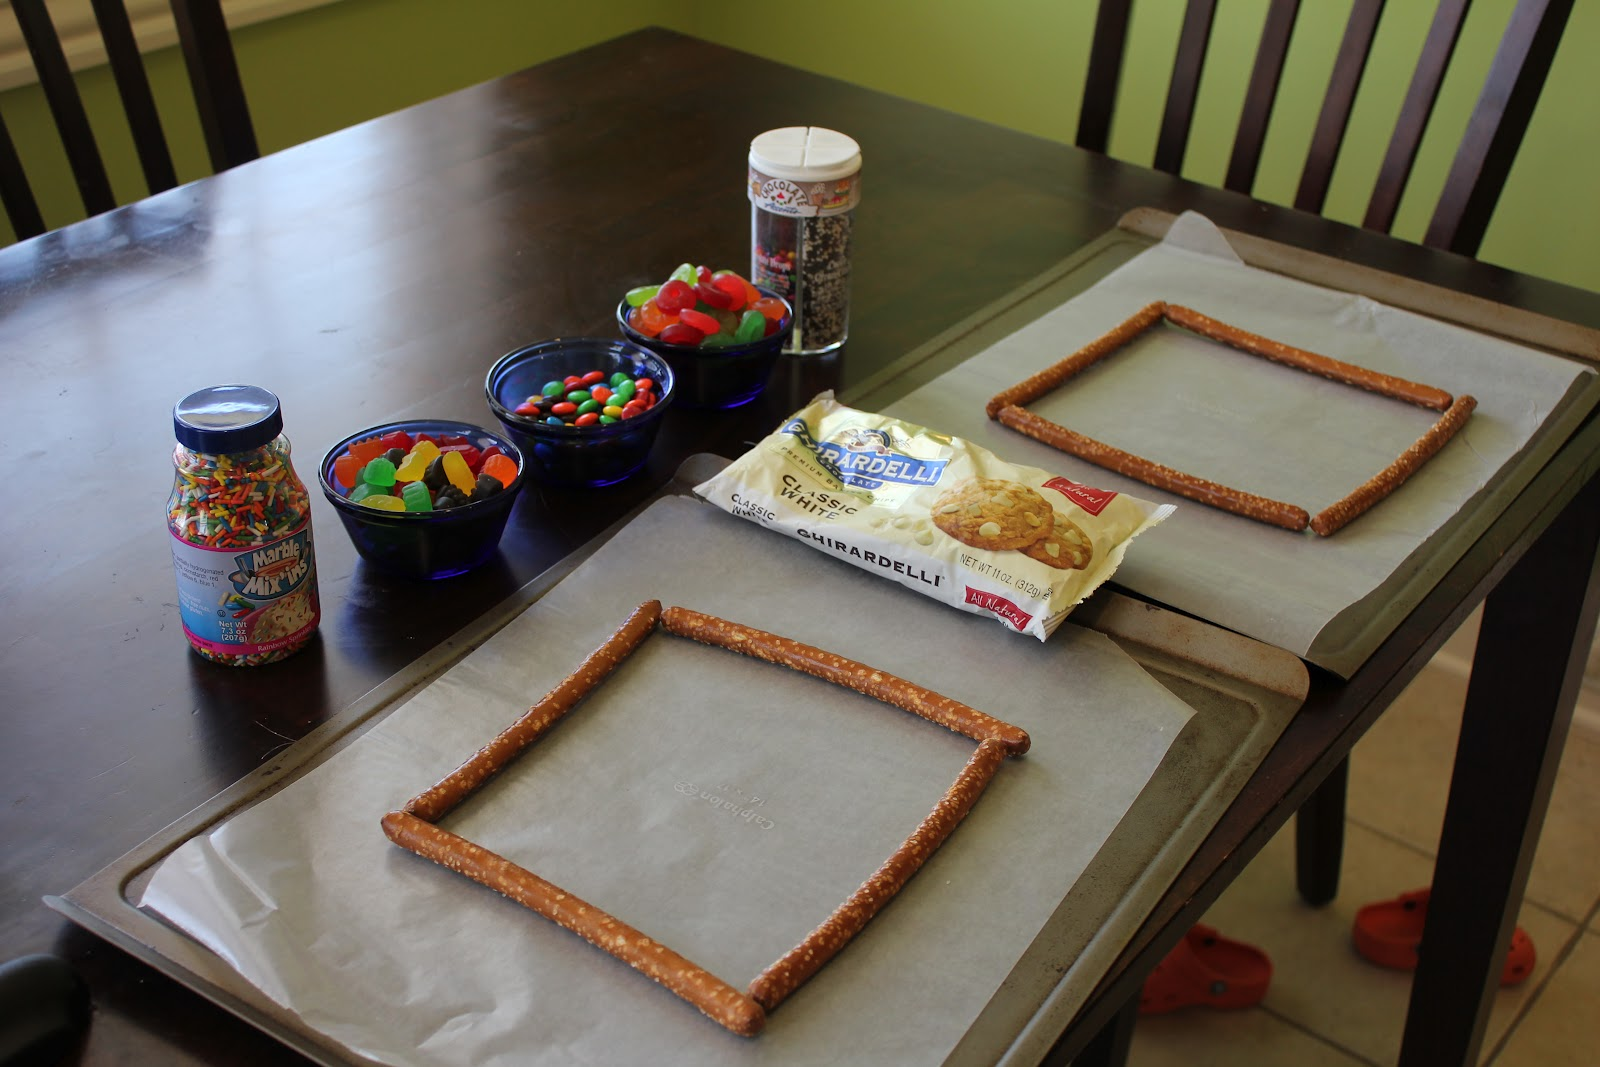 Play at home mom llc edible art frames every year at christmas we make candy cane bark she asked me if we could make it of course the answer was yes we just went a different route jeuxipadfo Image collections